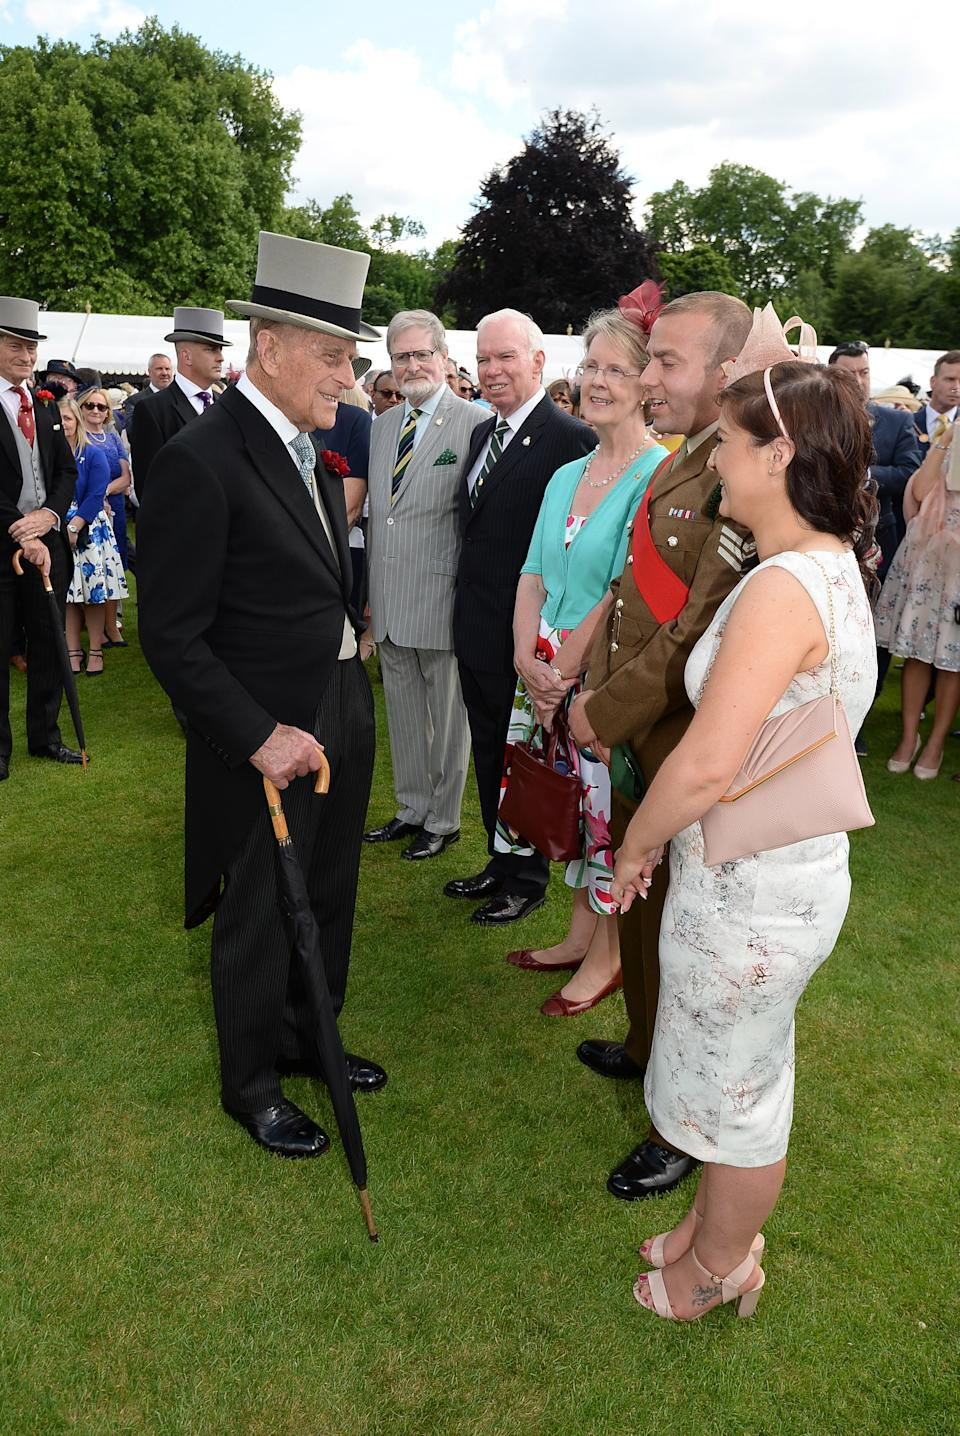 The Duke of Edinburgh speaking to guests at a garden party at Buckingham Palace in London. PRESS ASSOCIATION Photo. Picture date: Thursday June 1, 2017. See PA story ROYAL Garden. Photo credit should read: John Stillwell/PA Wire